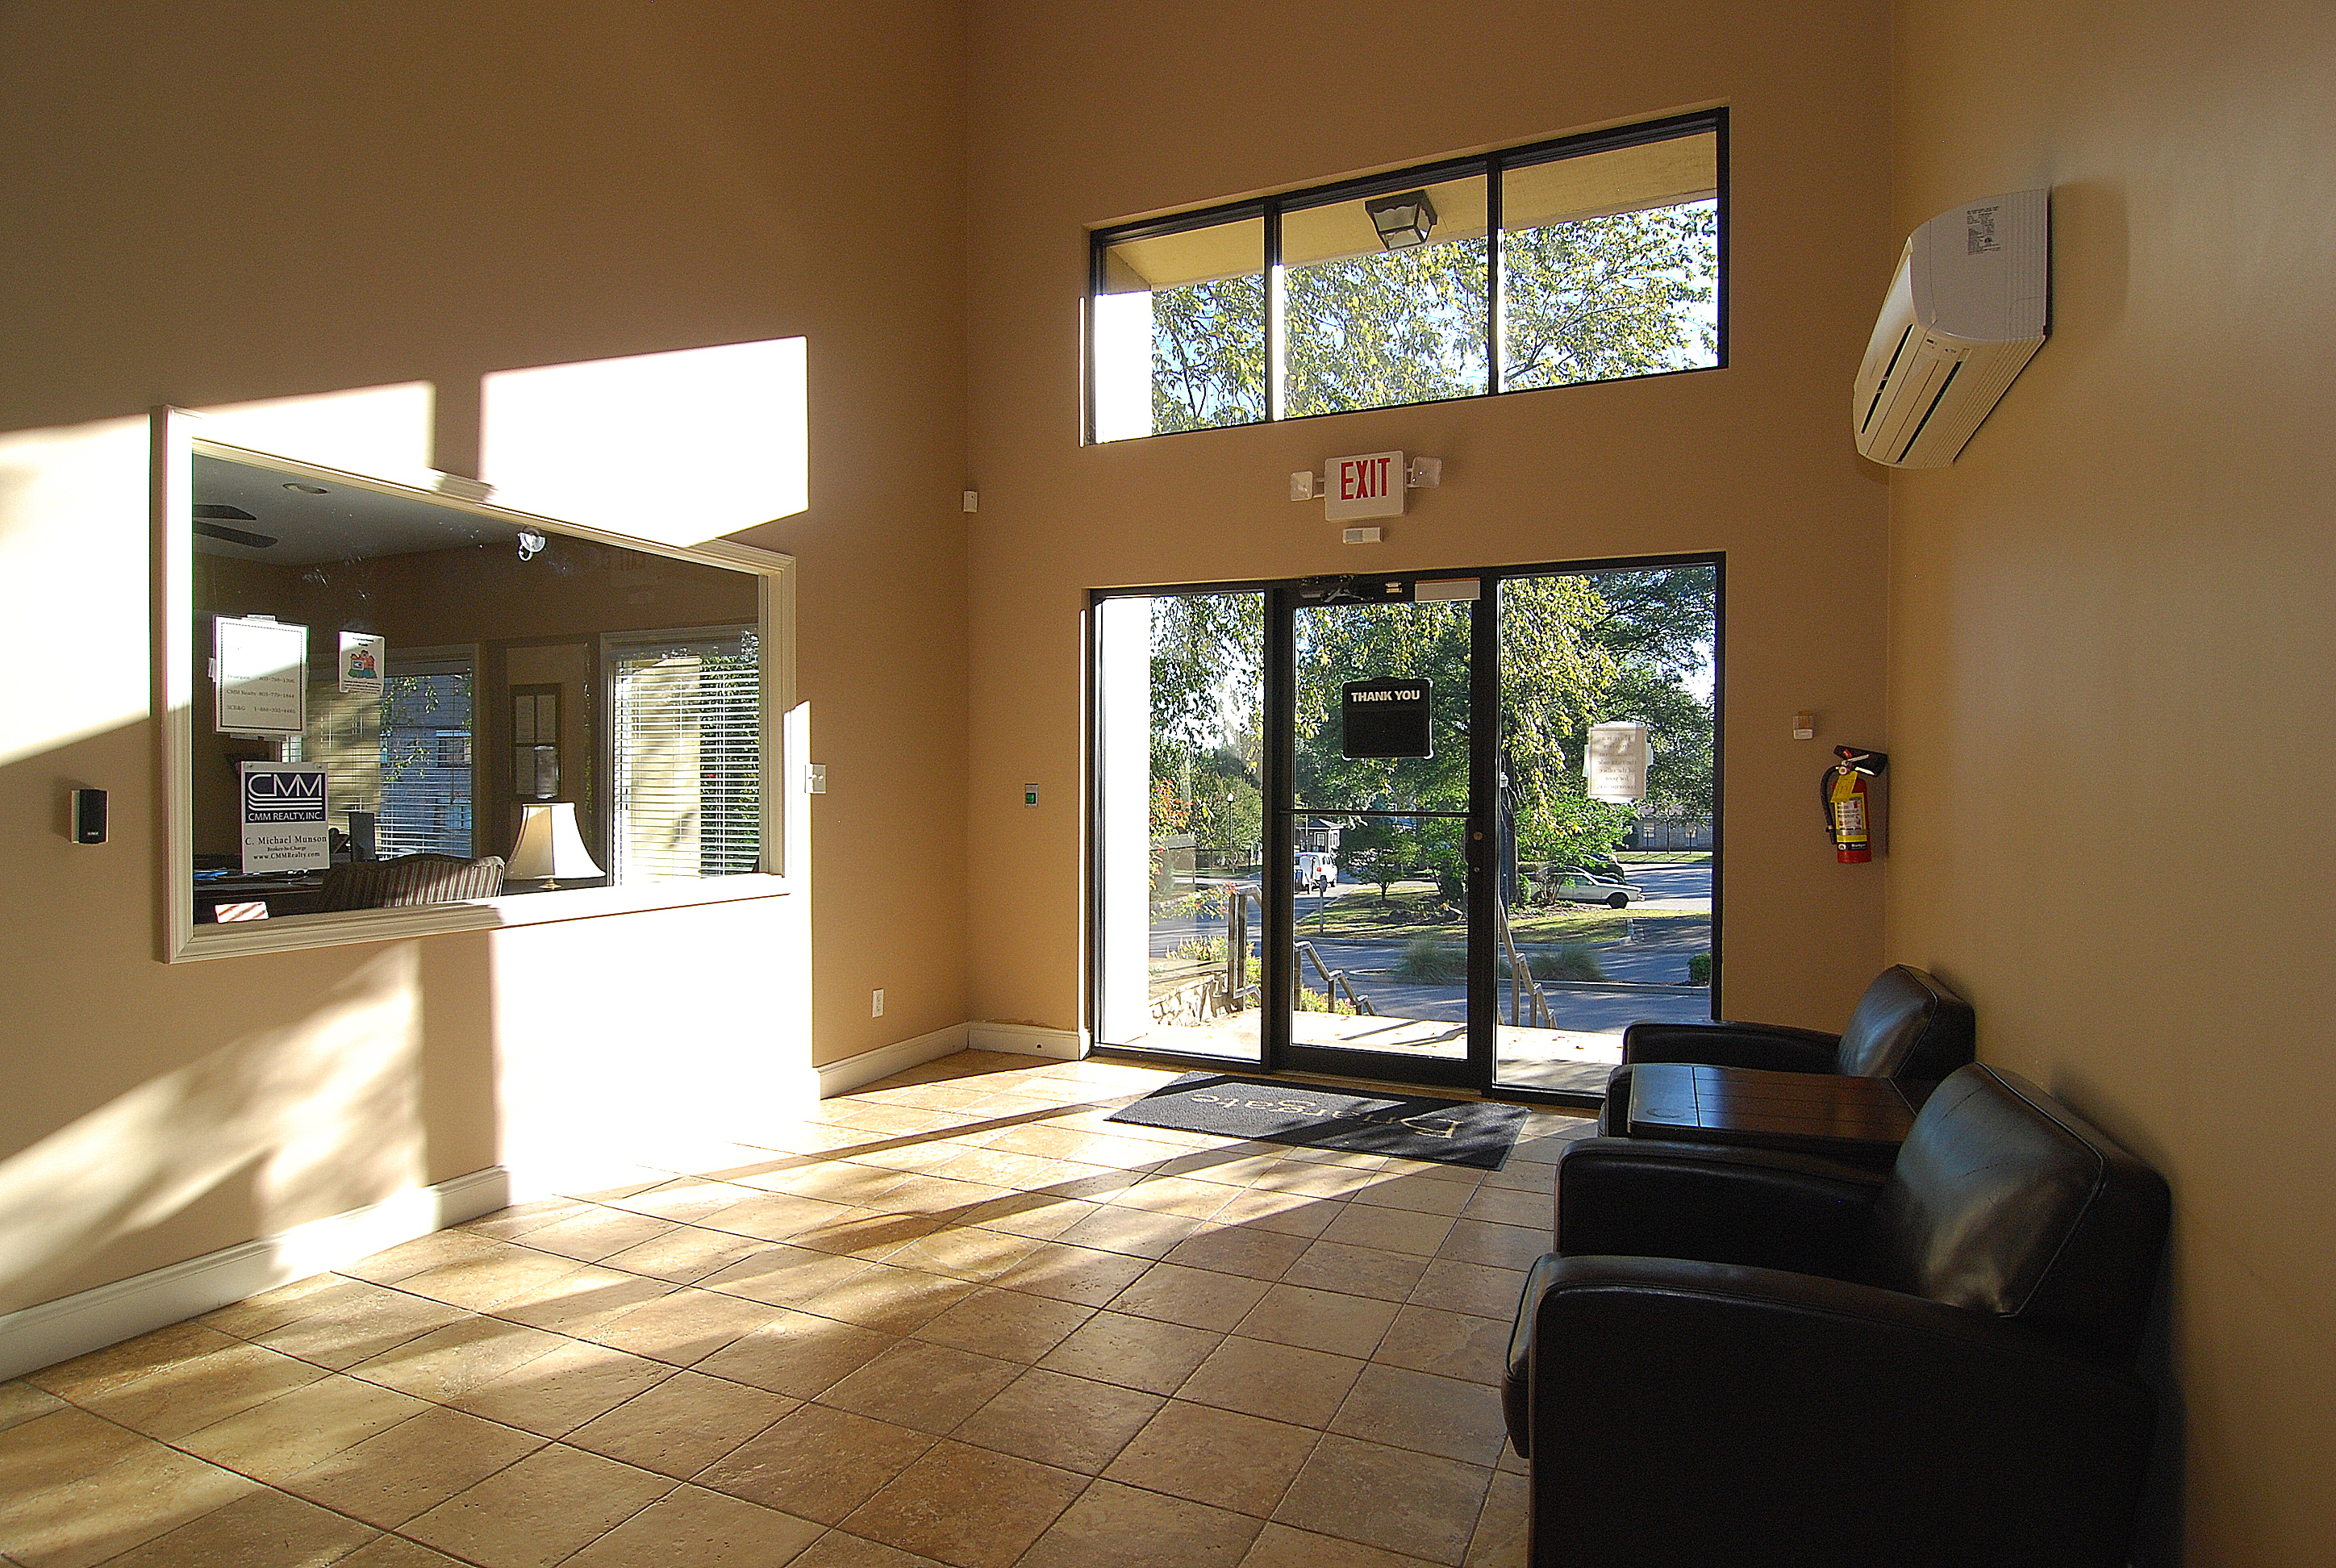 Briargate Amenities Center Entrance